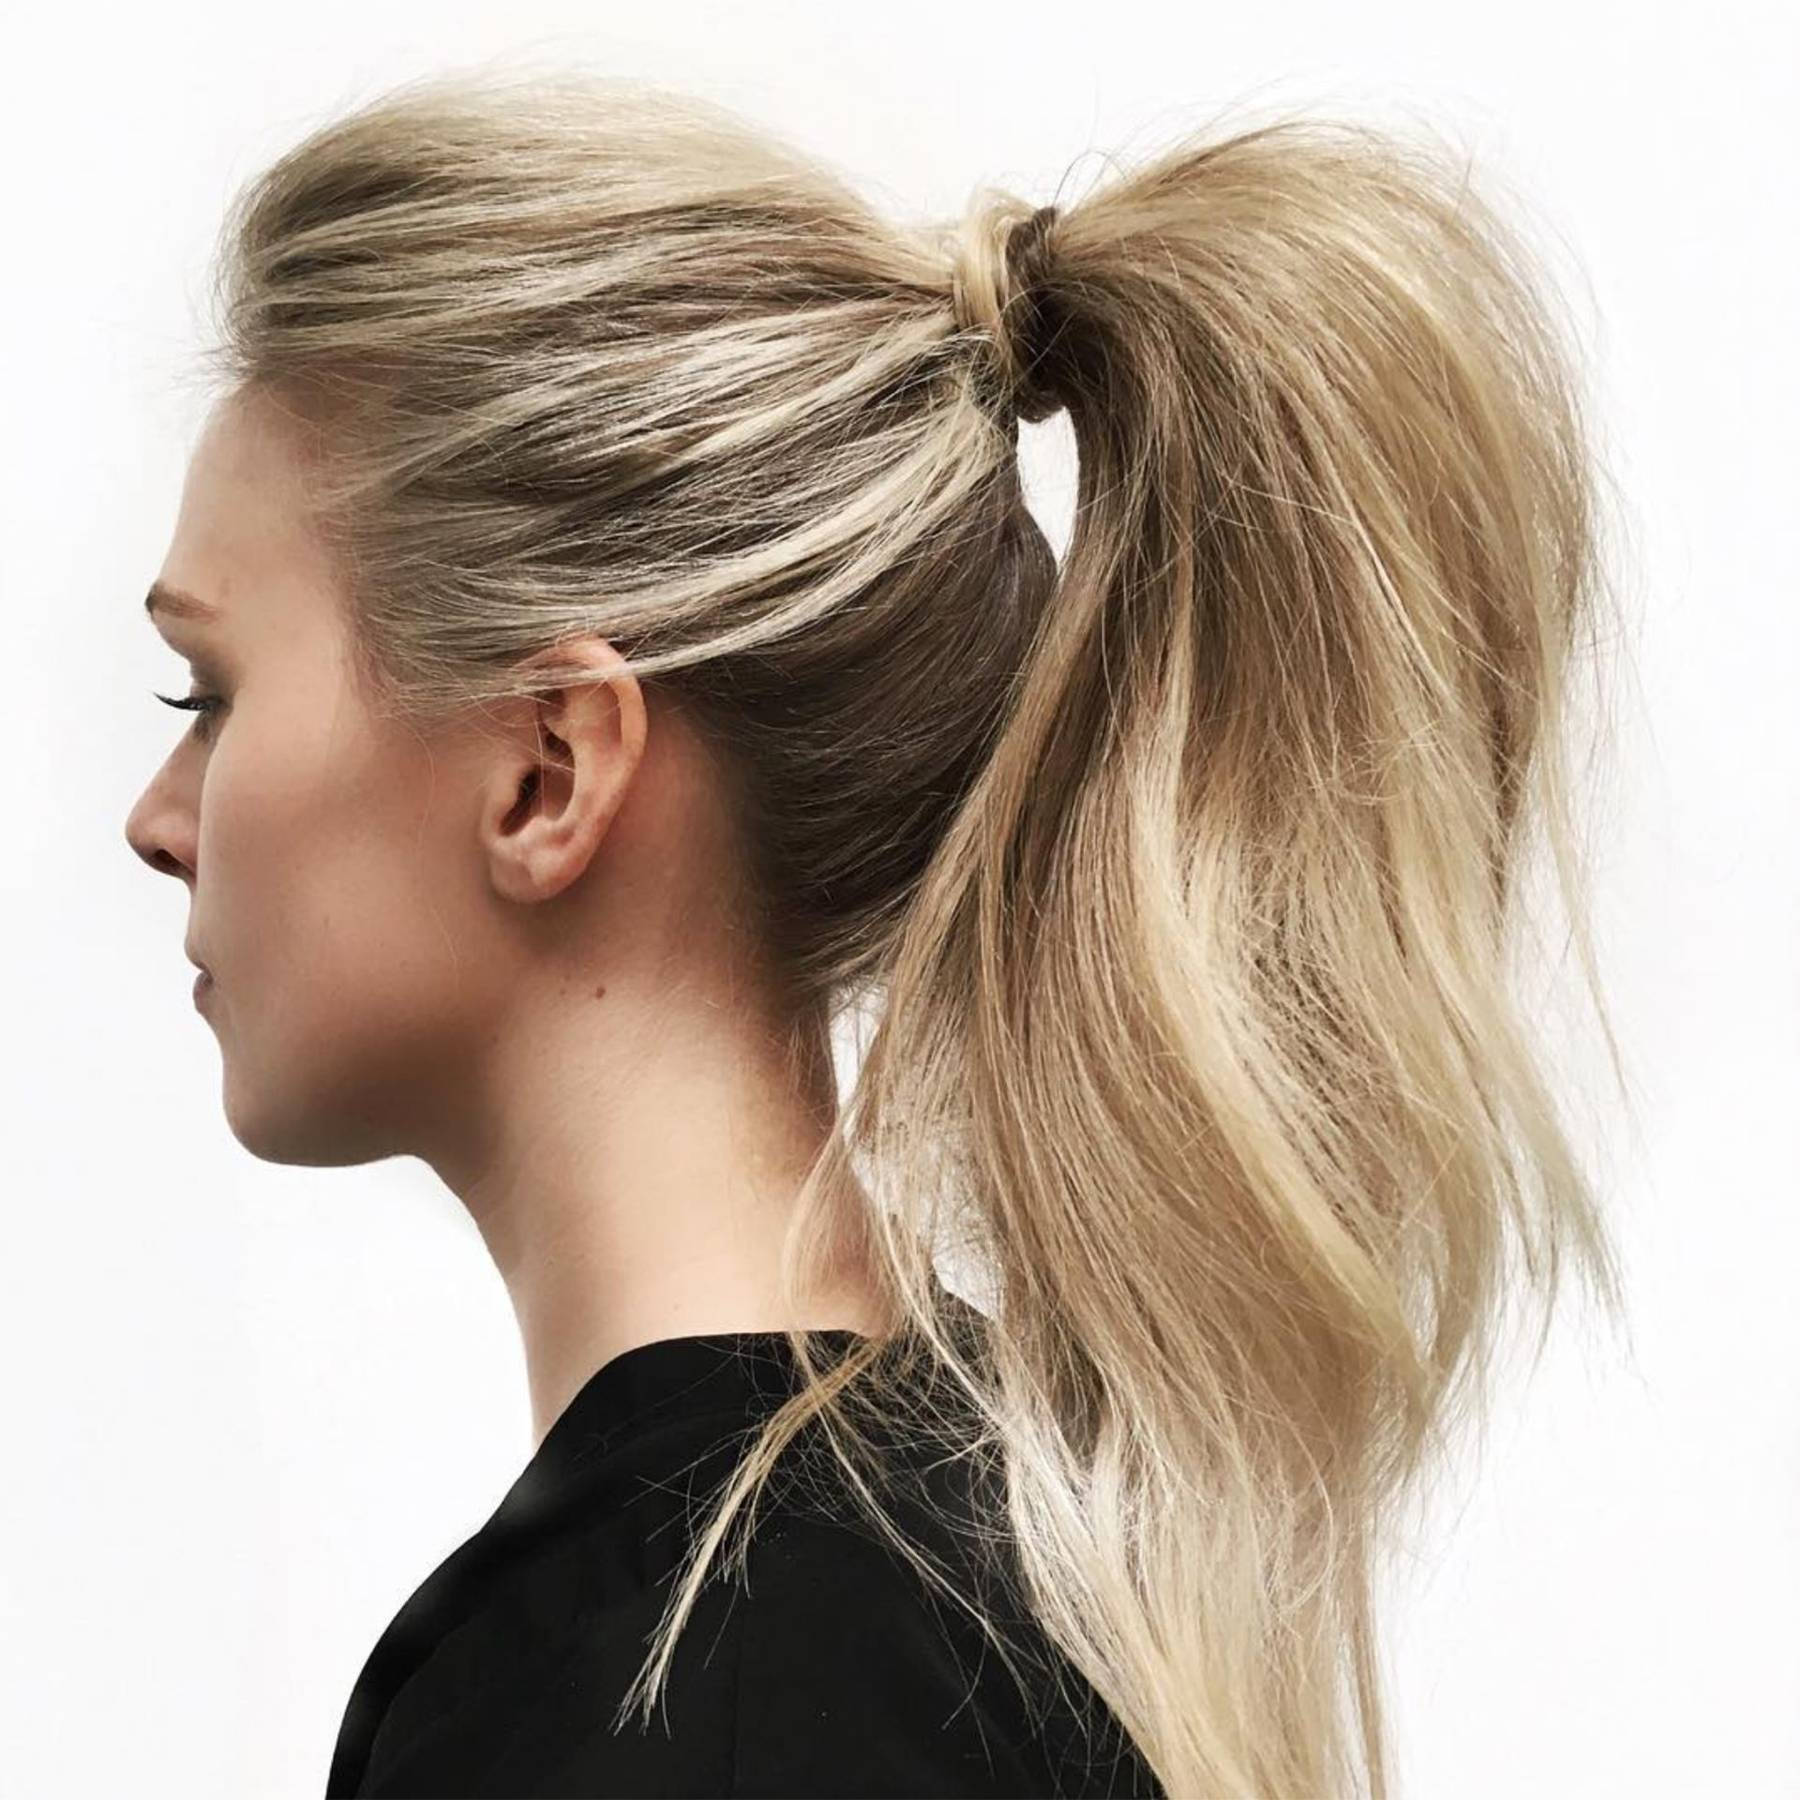 Surprising Ponytail Hairstyles 2019 Hair Up Ideas Glamour Uk Natural Hairstyles Runnerswayorg